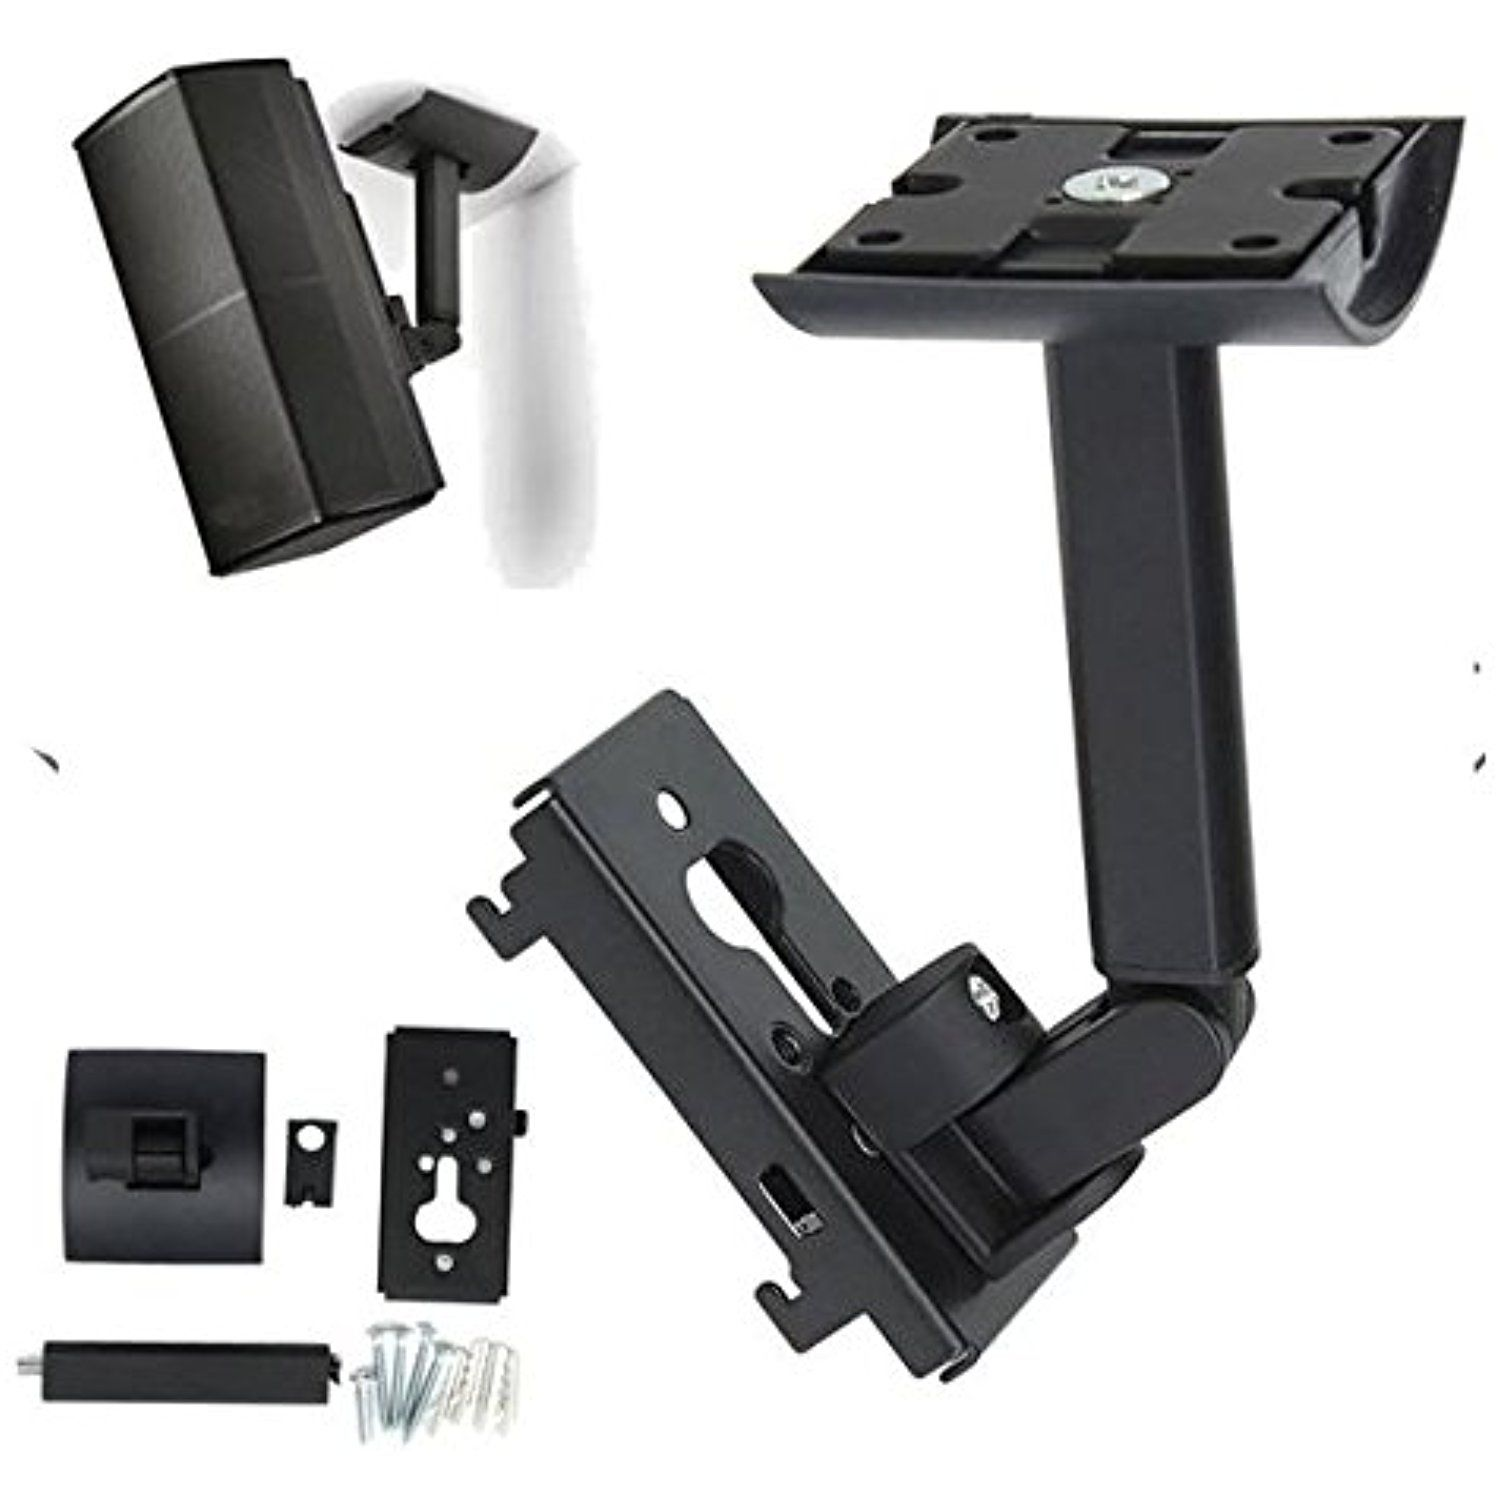 Ub20 Series 2 Ii Wall Ceiling Bracket Mount Fit For Bose All Lifestyle Cinemate By Advanced Read More At The Image Link This Is With Images Wall Mount Bracket Bracket